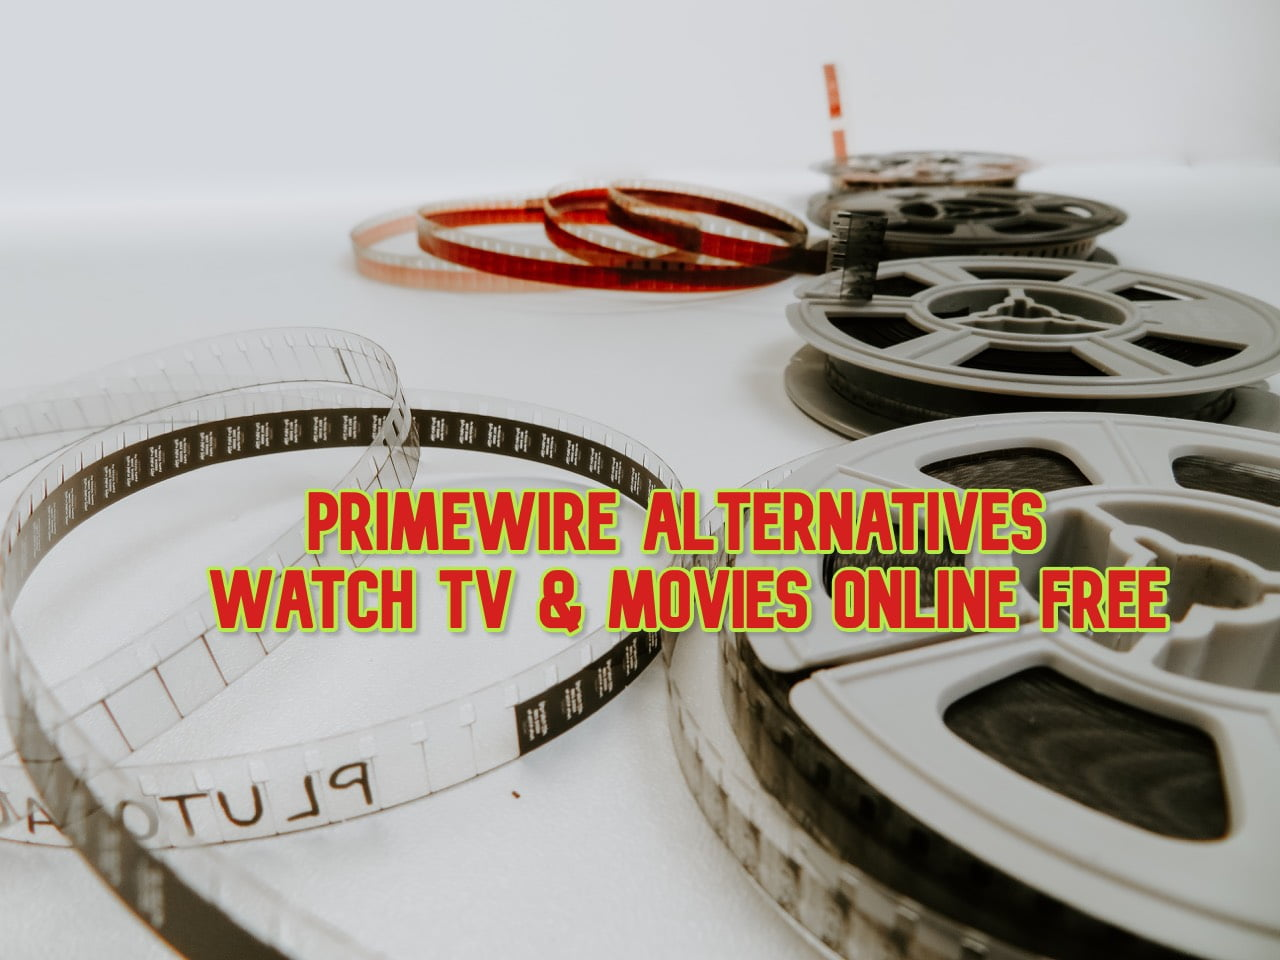 10 Primewire Alternatives: Watch TV & Movies Online Free